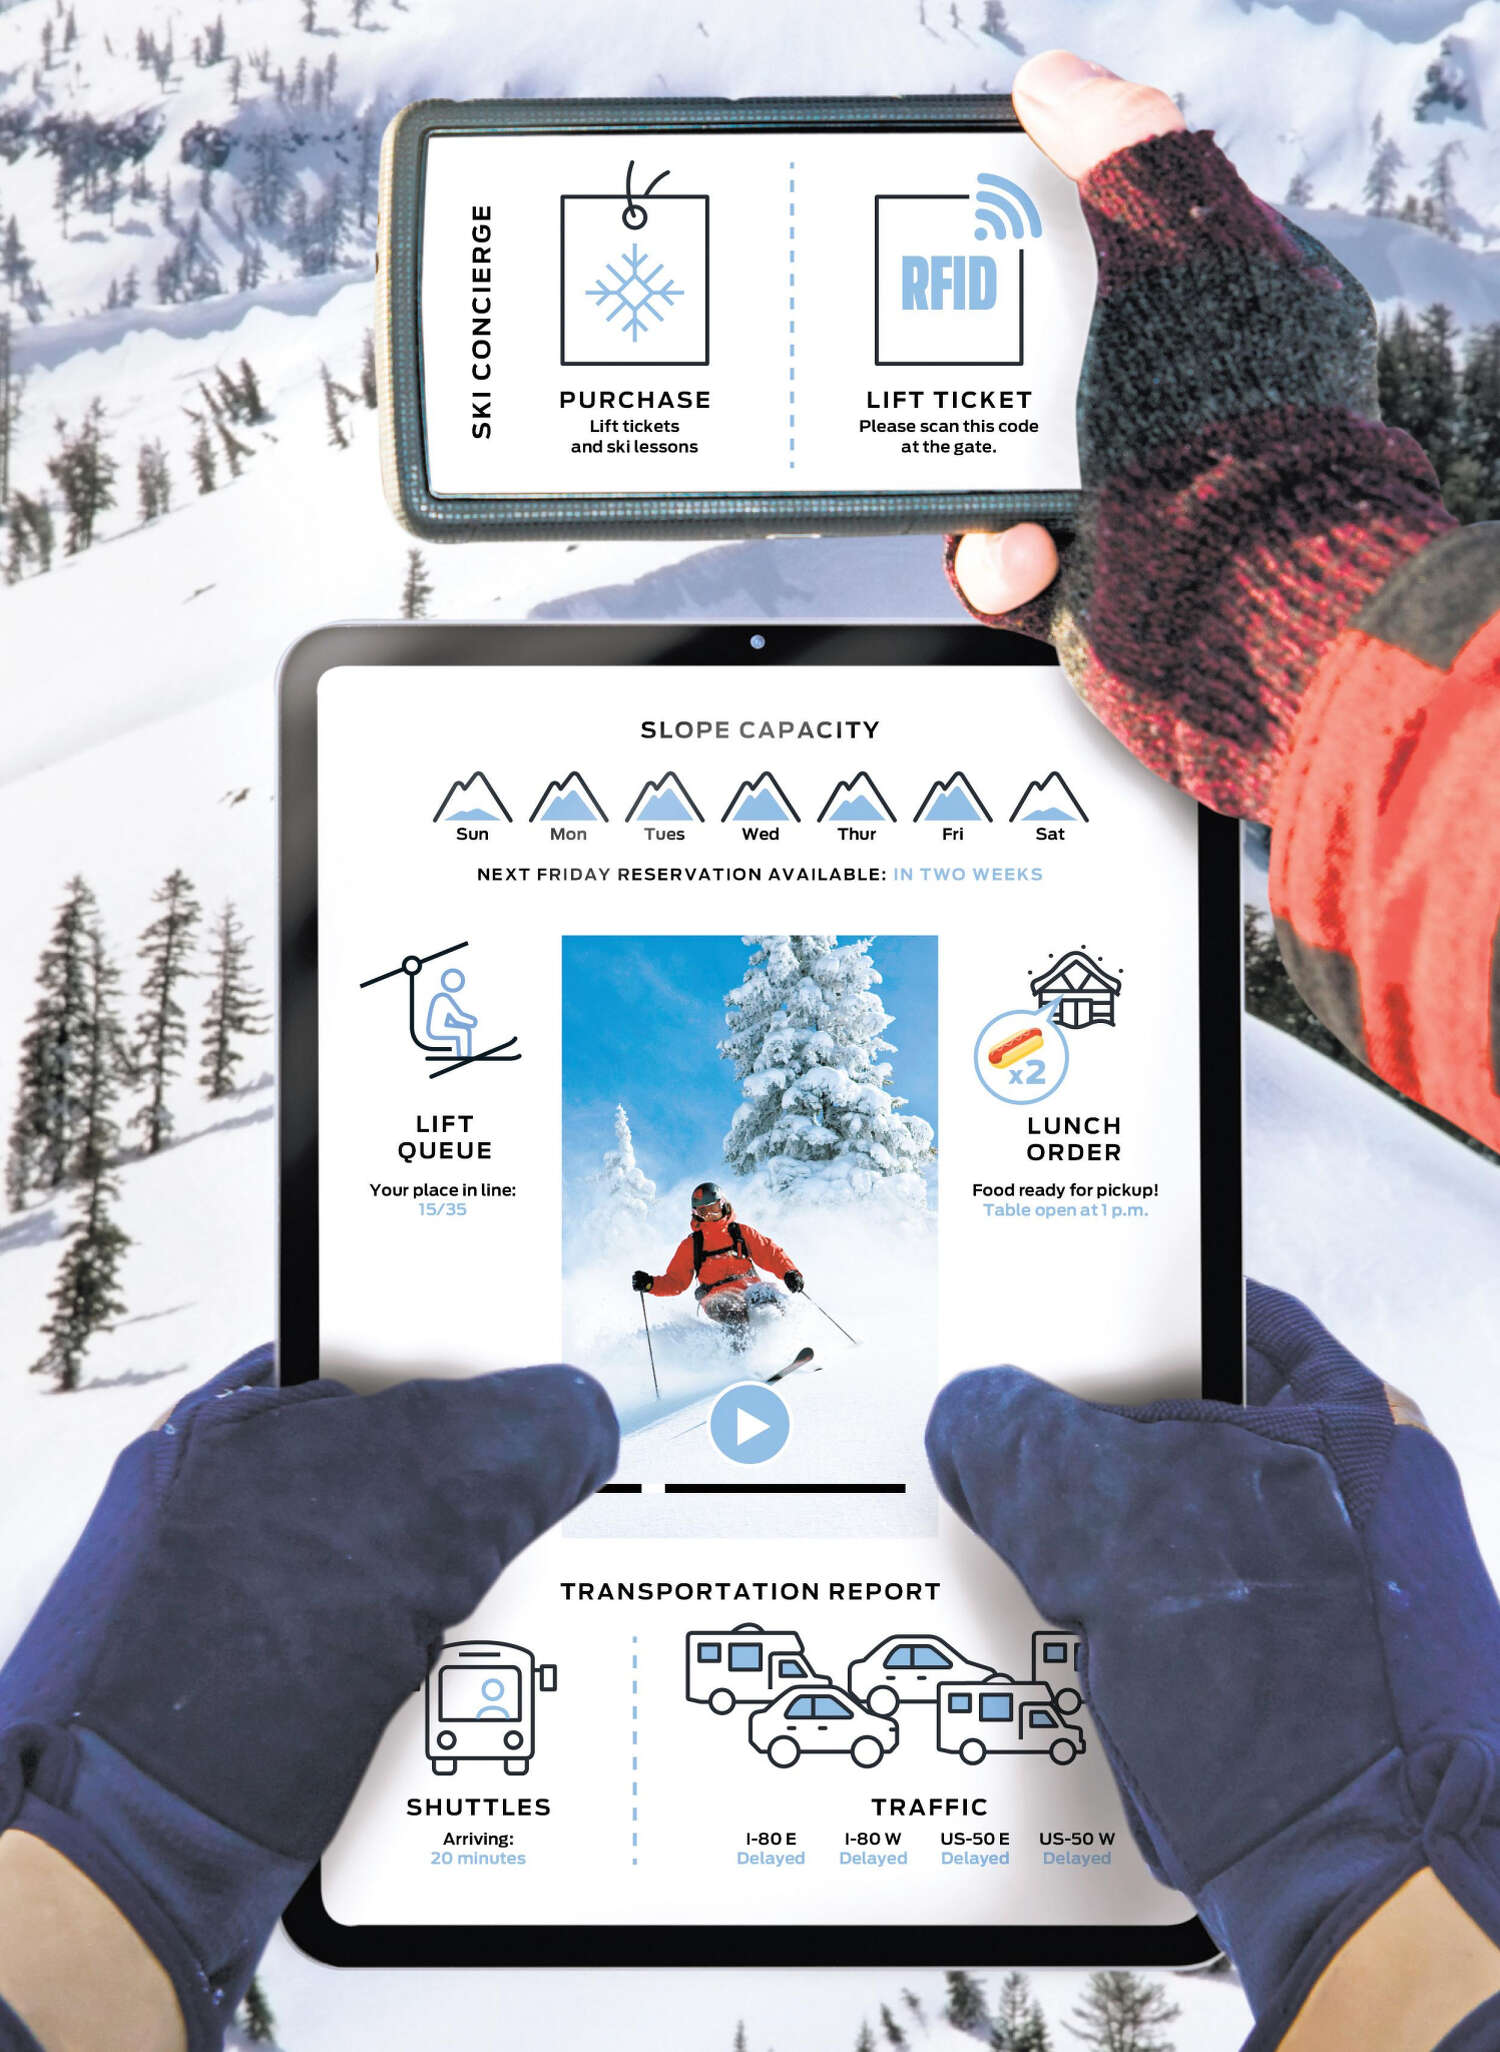 An illustration depicts a tablet and smartphone with an interface dedicated to all things skiing.